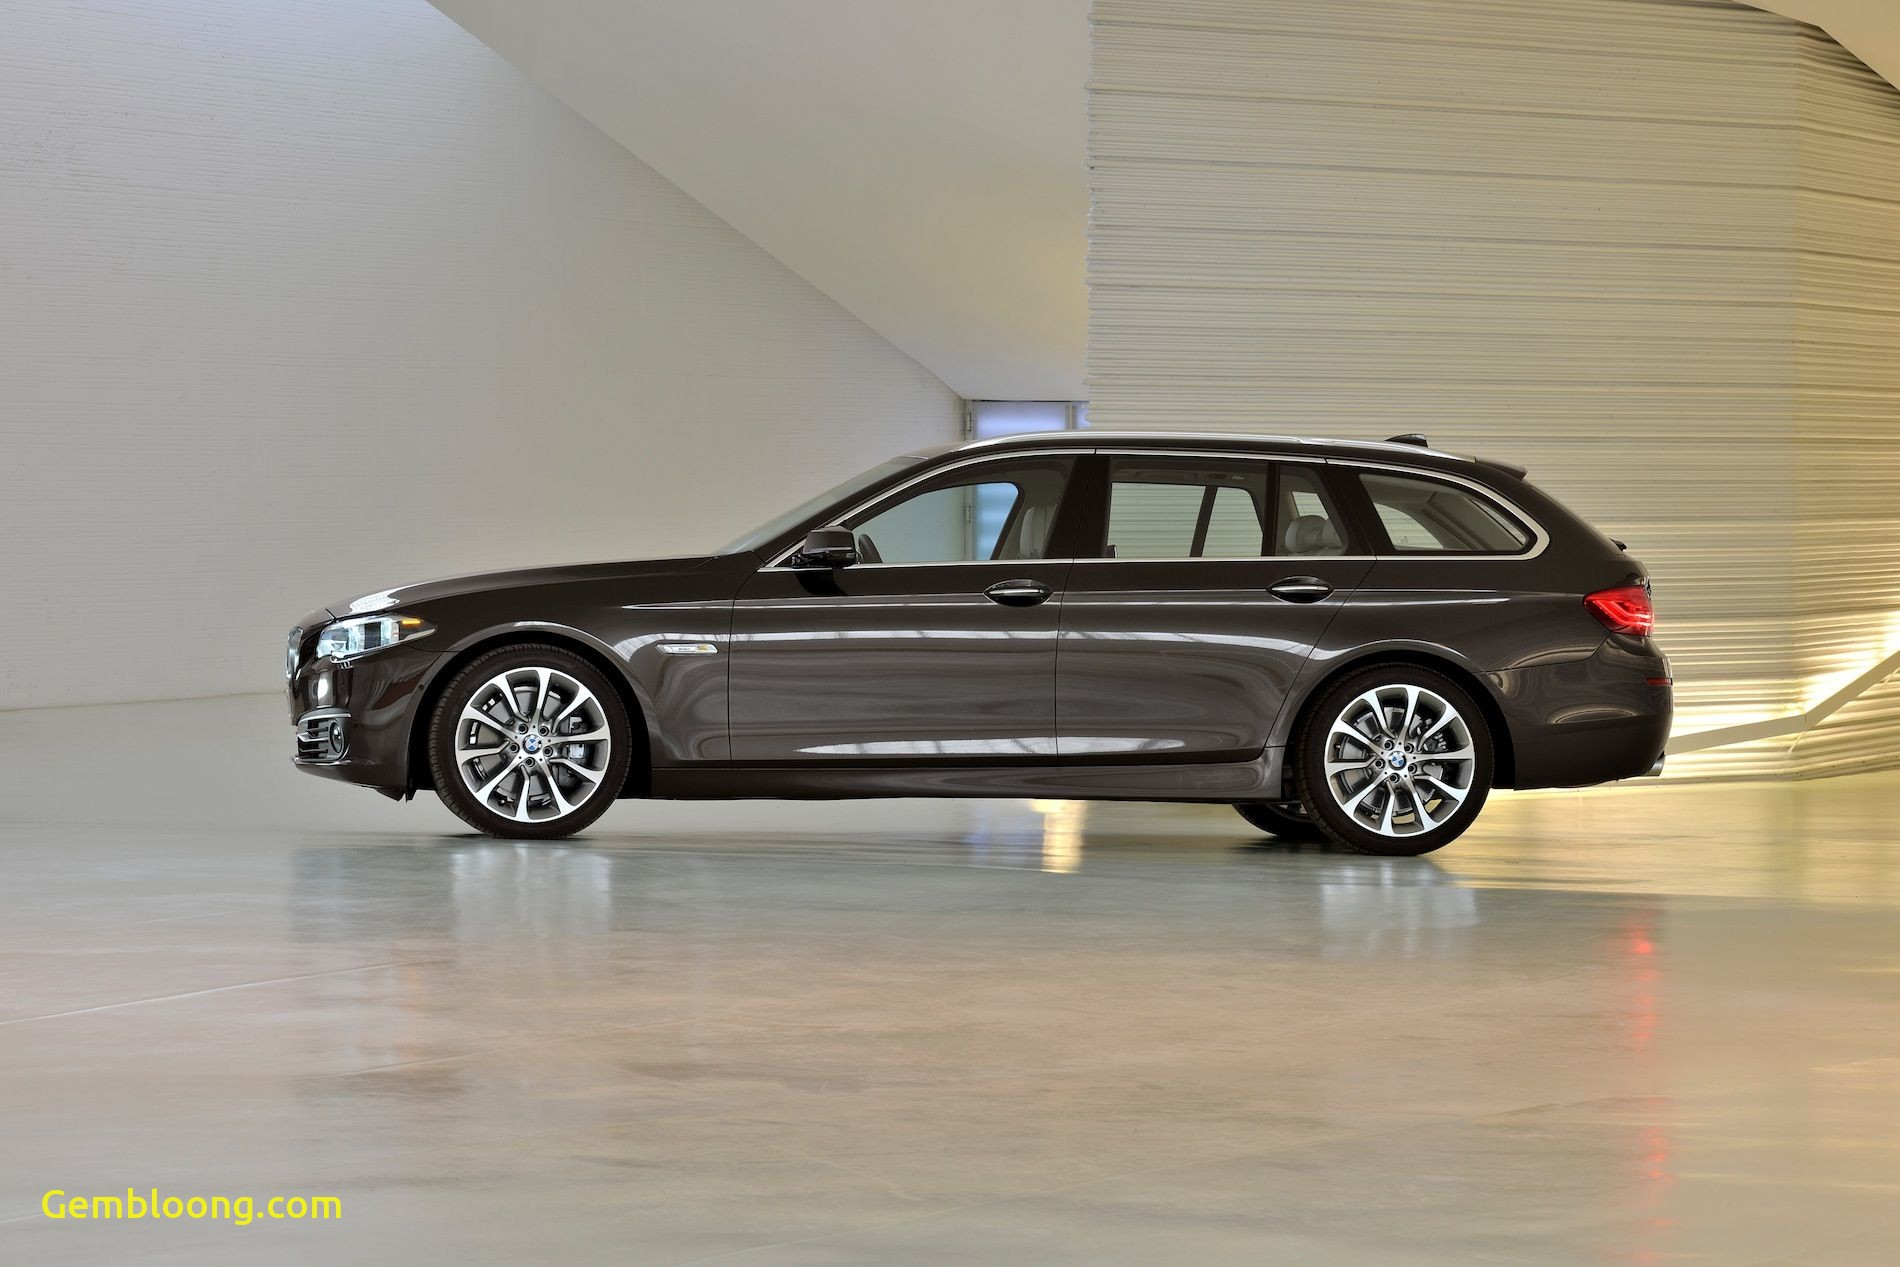 Bmw 535 Elegant Ficial the 2014 Bmw 5 Series Lci Facelift S and